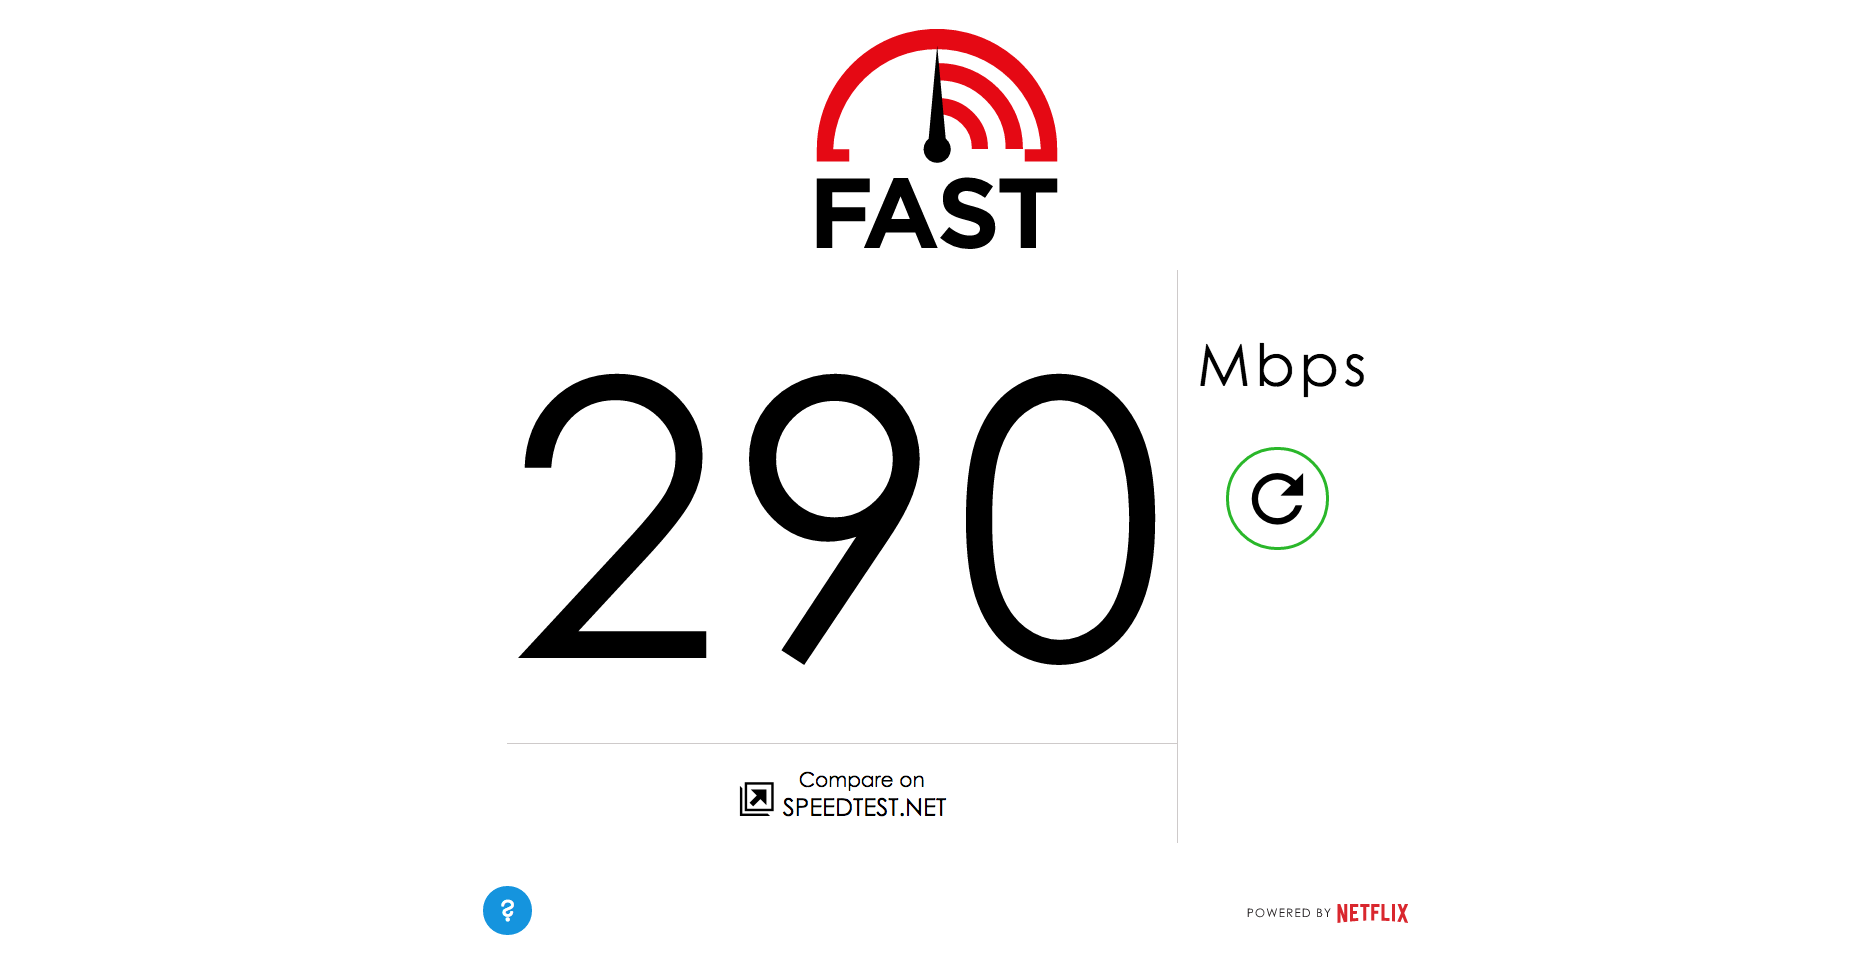 Netflix launches new internet speed testing tool for consumers